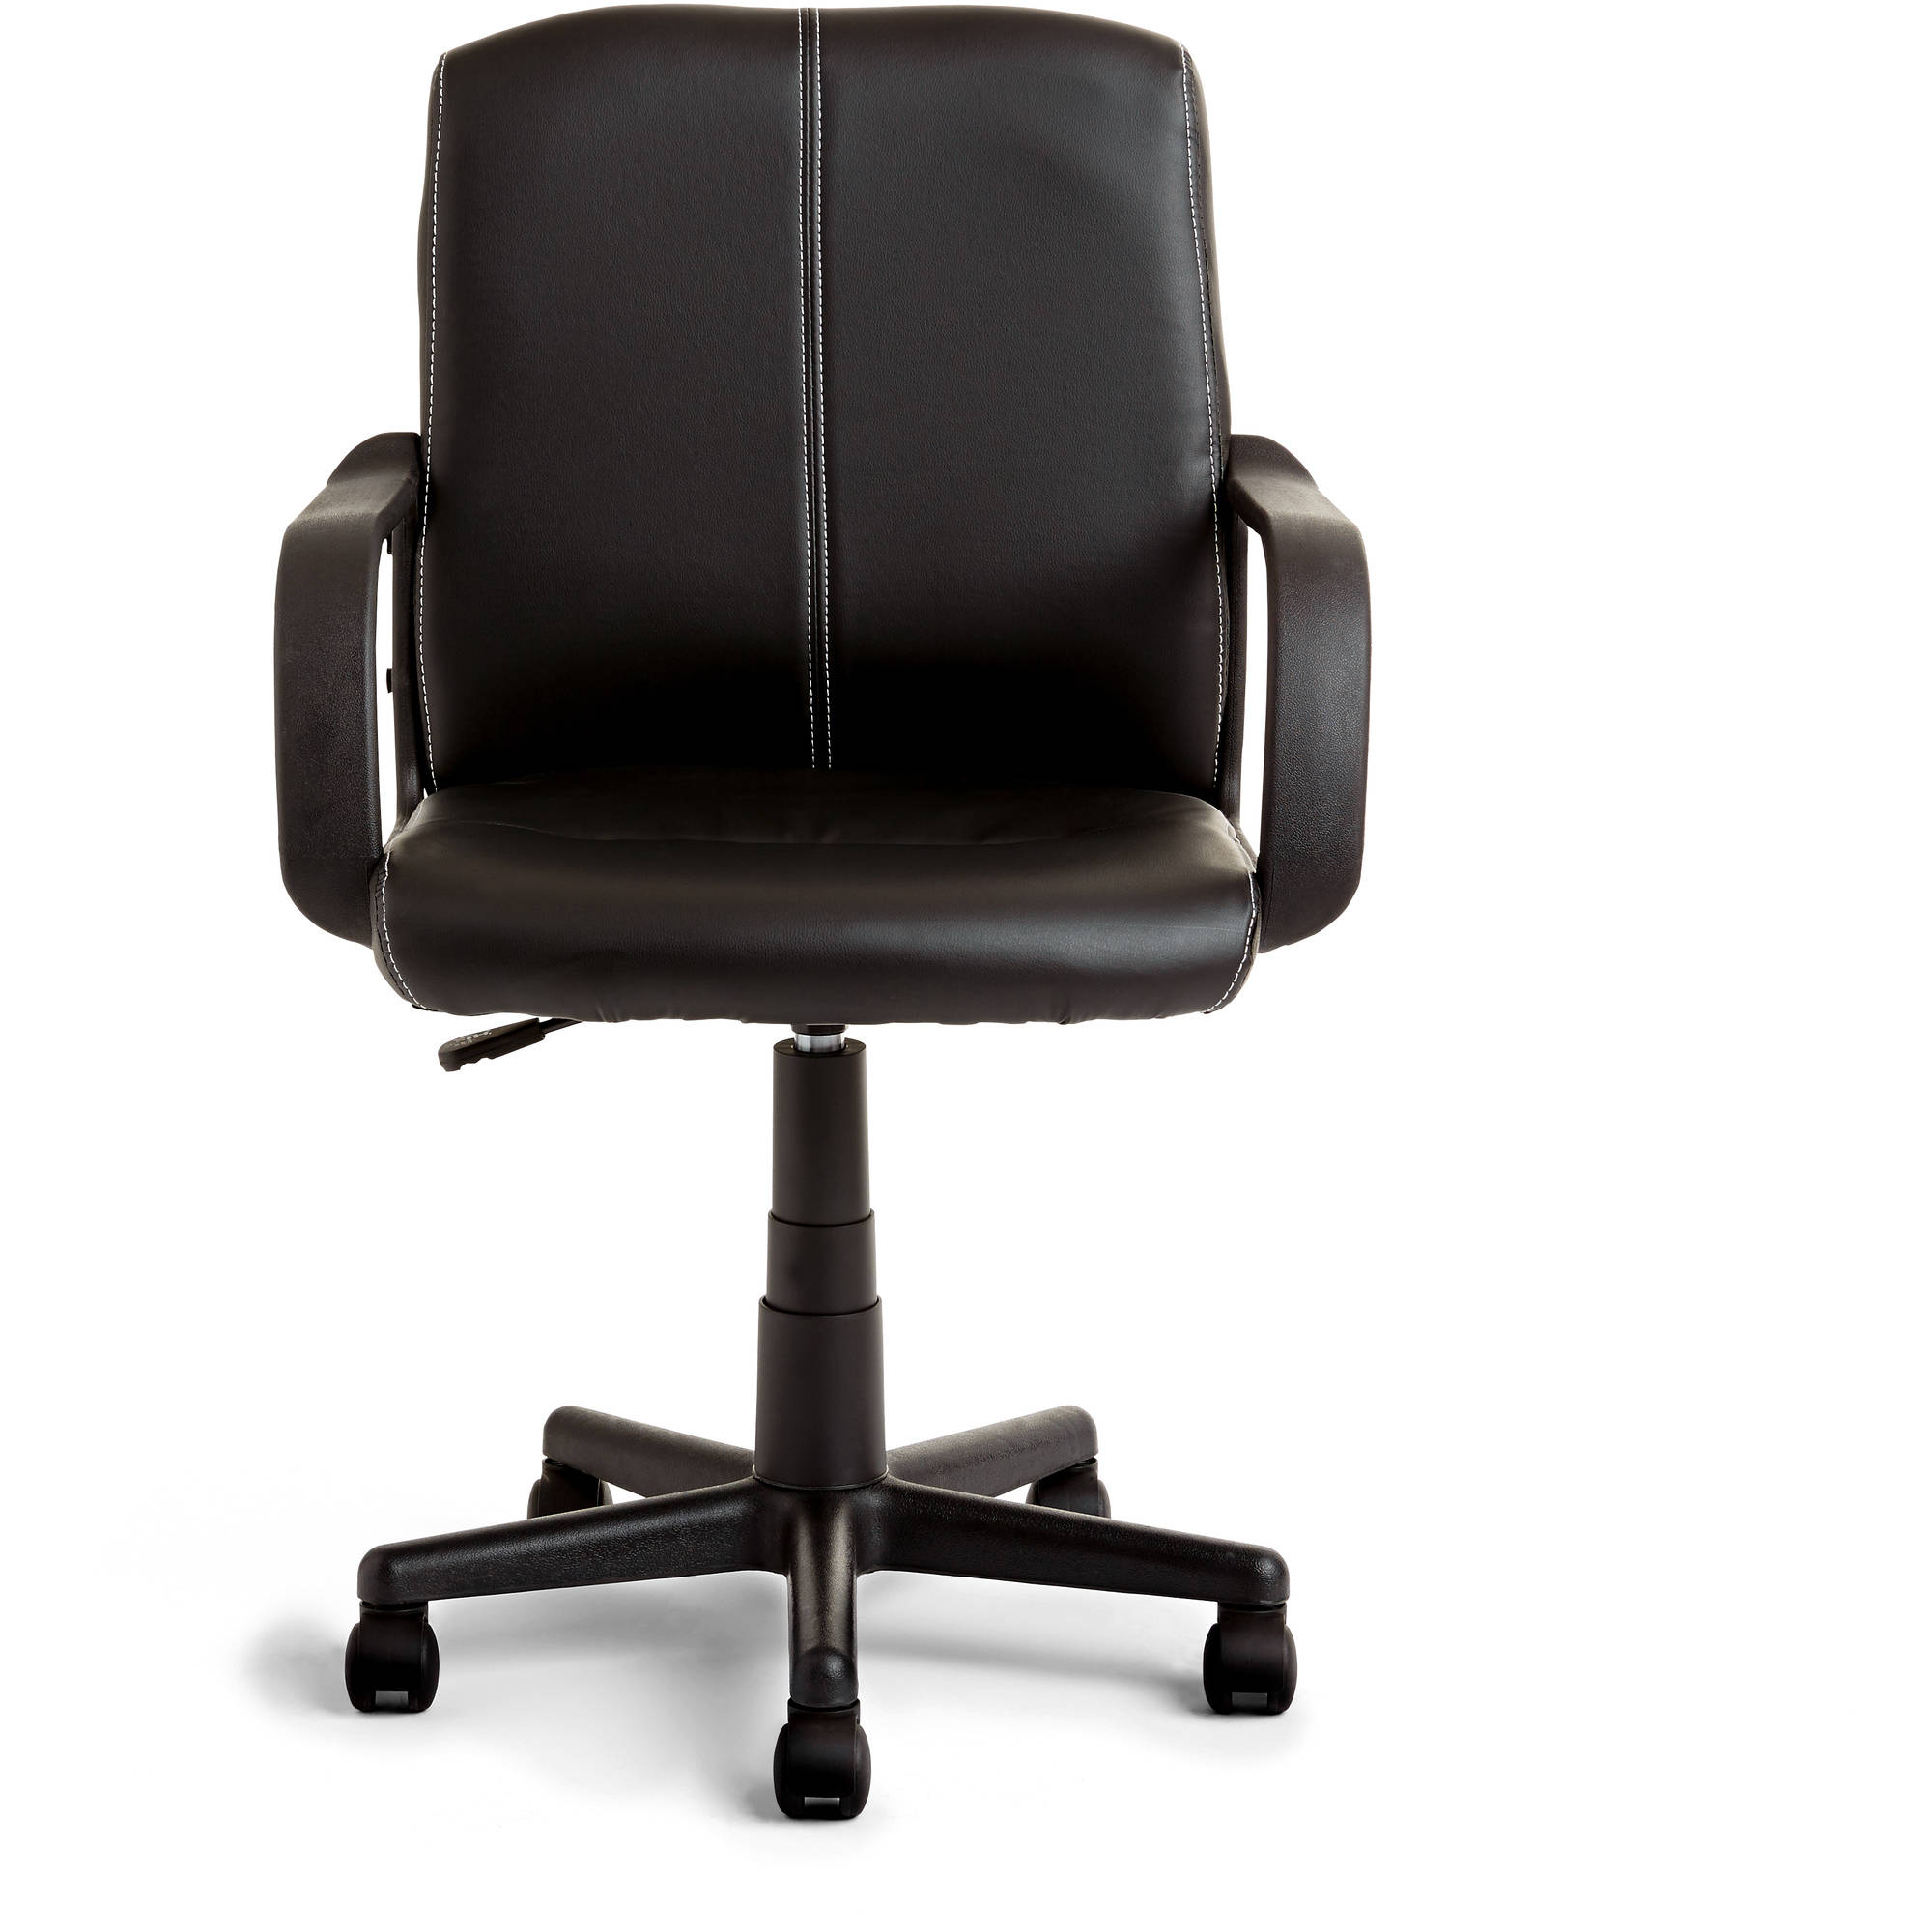 Mainstays Leather Mid Back Rolling Office Chair, Multiple Colors